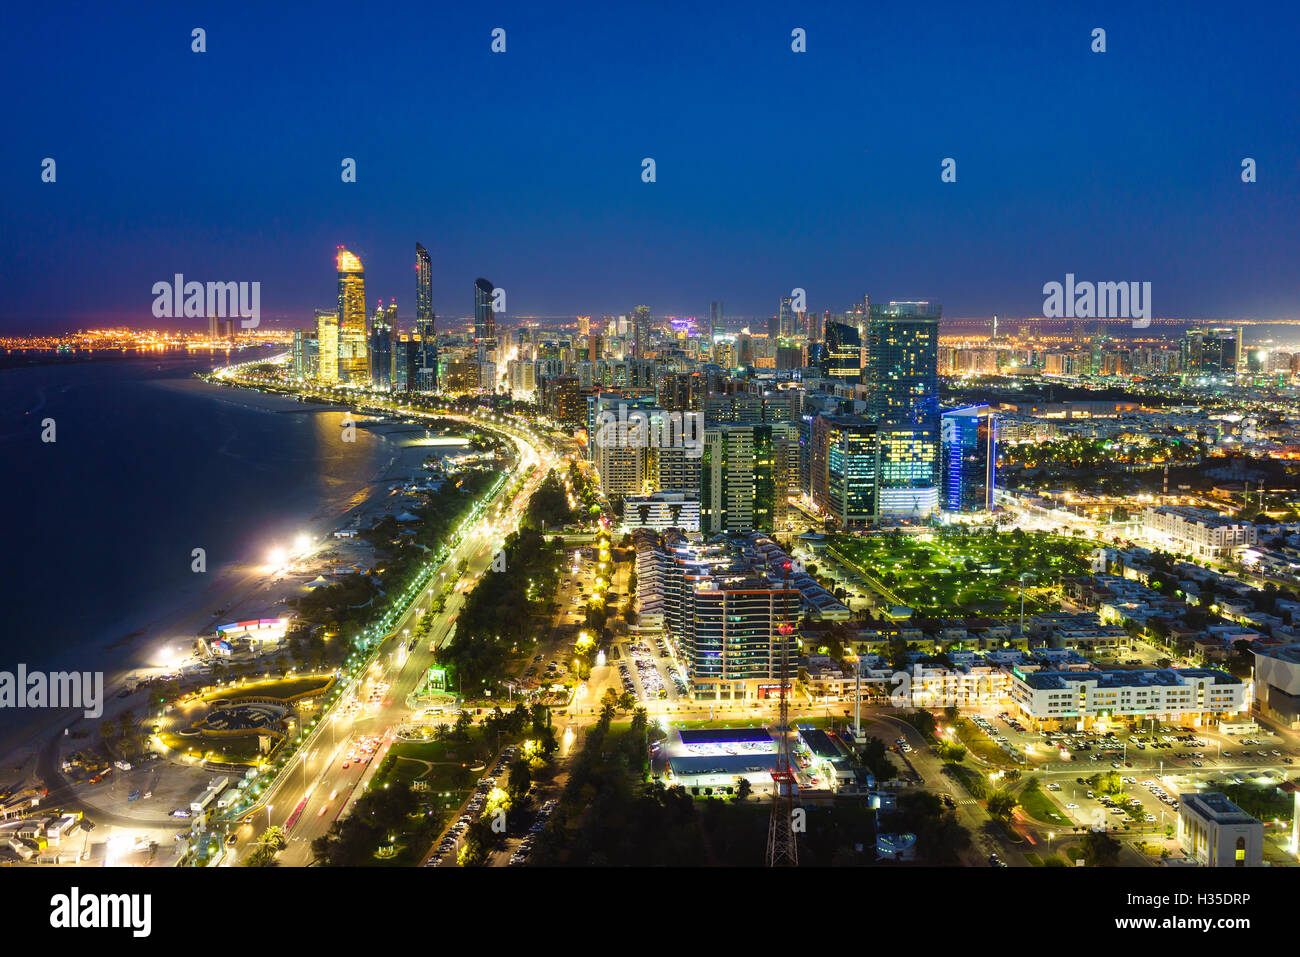 Skyline and Corniche, Al Markaziyah district by night, Abu Dhabi, United Arab Emirates, Middle East - Stock Image